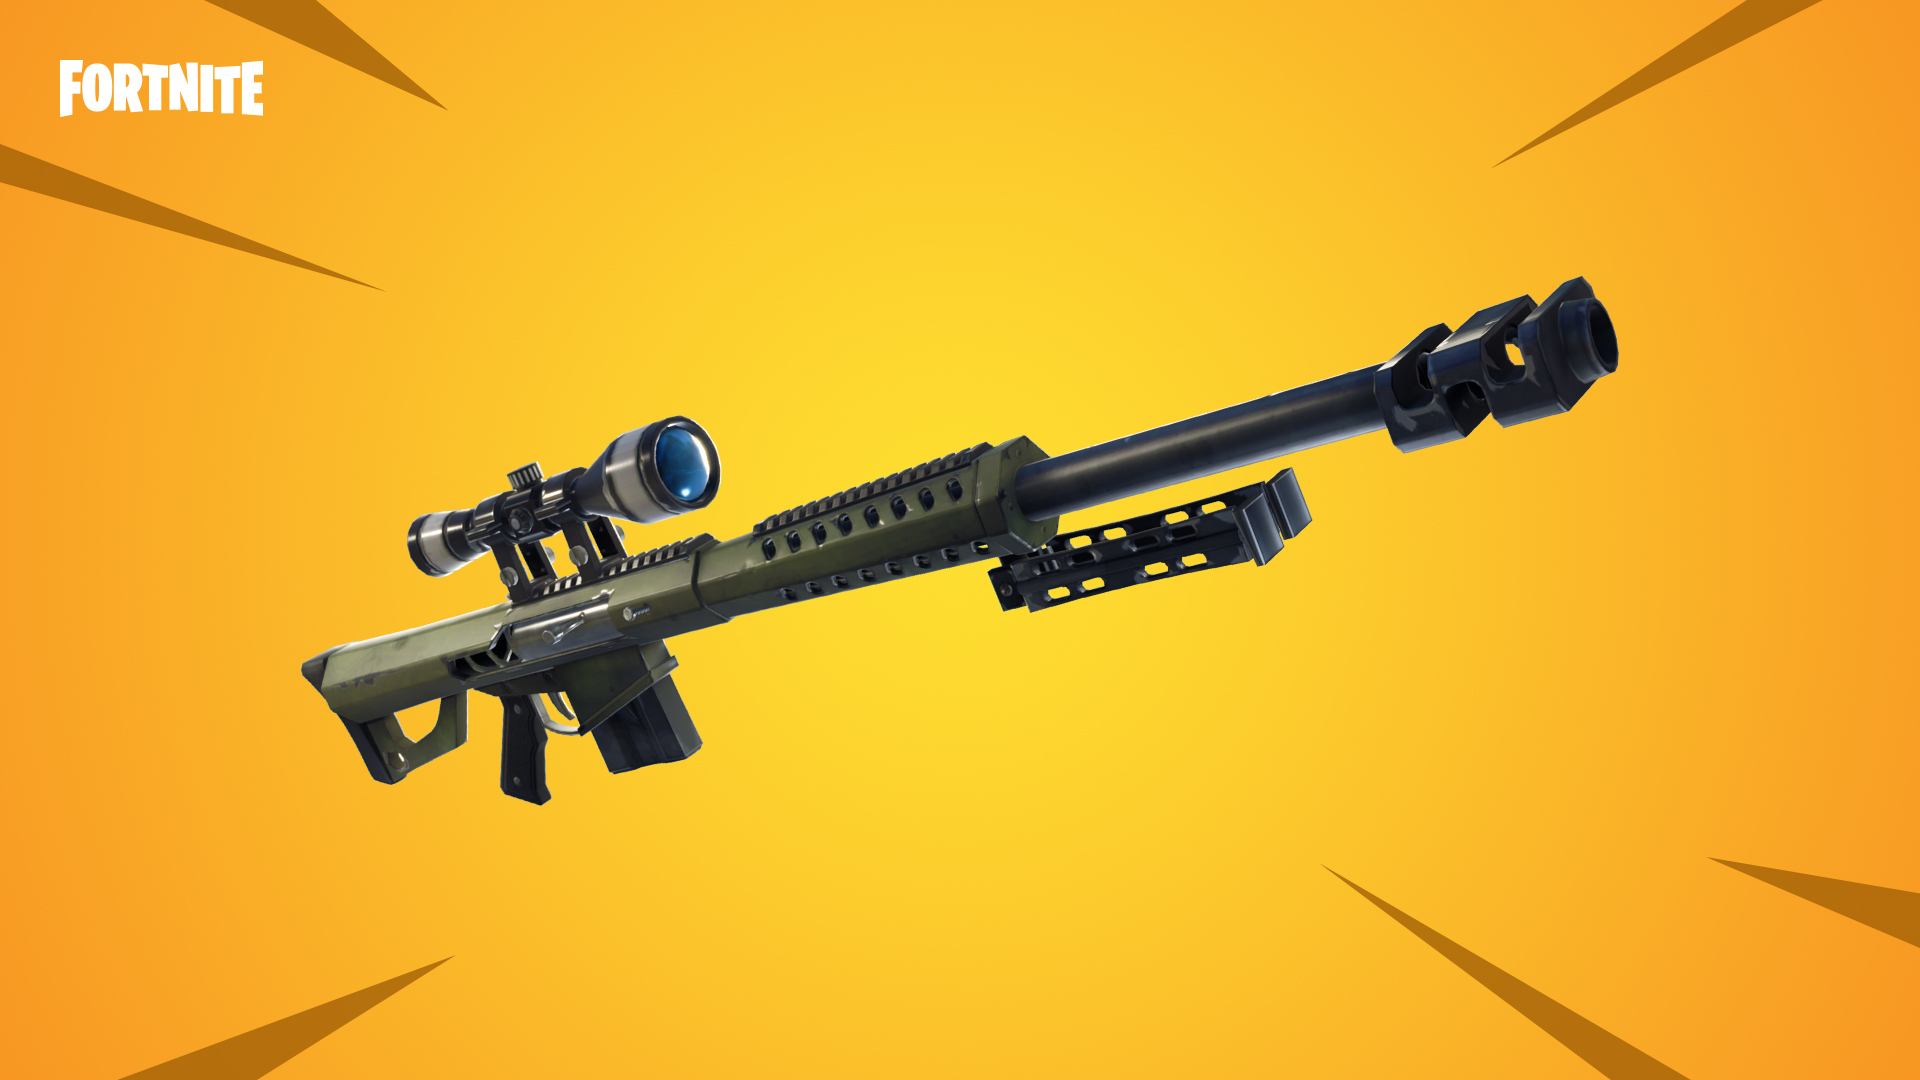 Fortnite Battle Royale Heavy Sniper